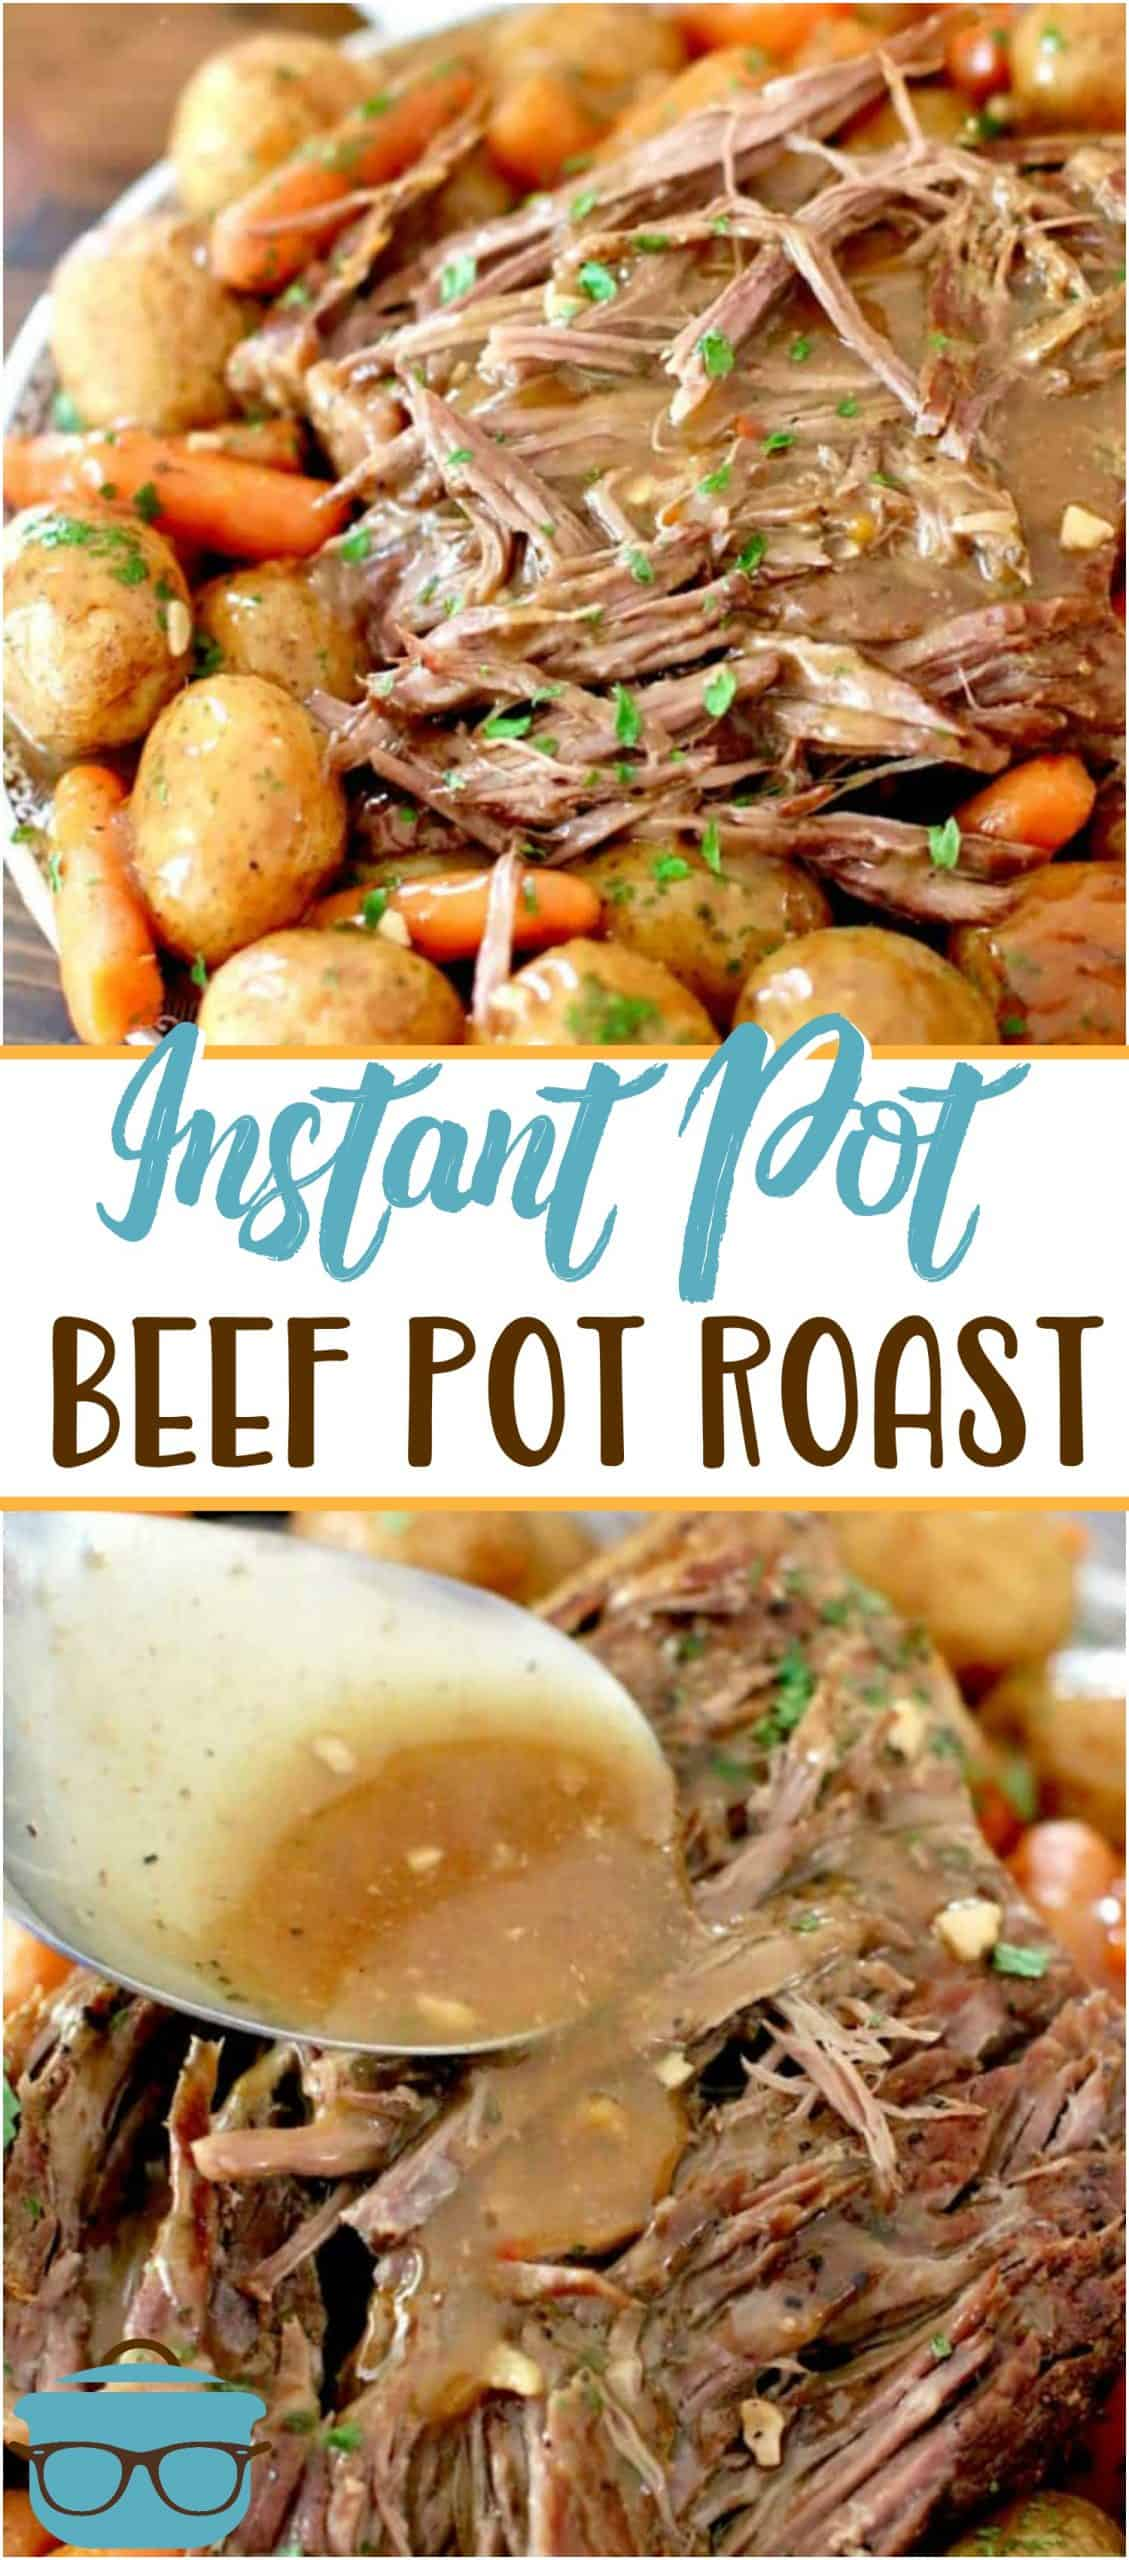 The Best Instant Pot Roast with carrots and potatoes that makes its own flavorful gravy. It's an entire meal made in the pressure cooker.